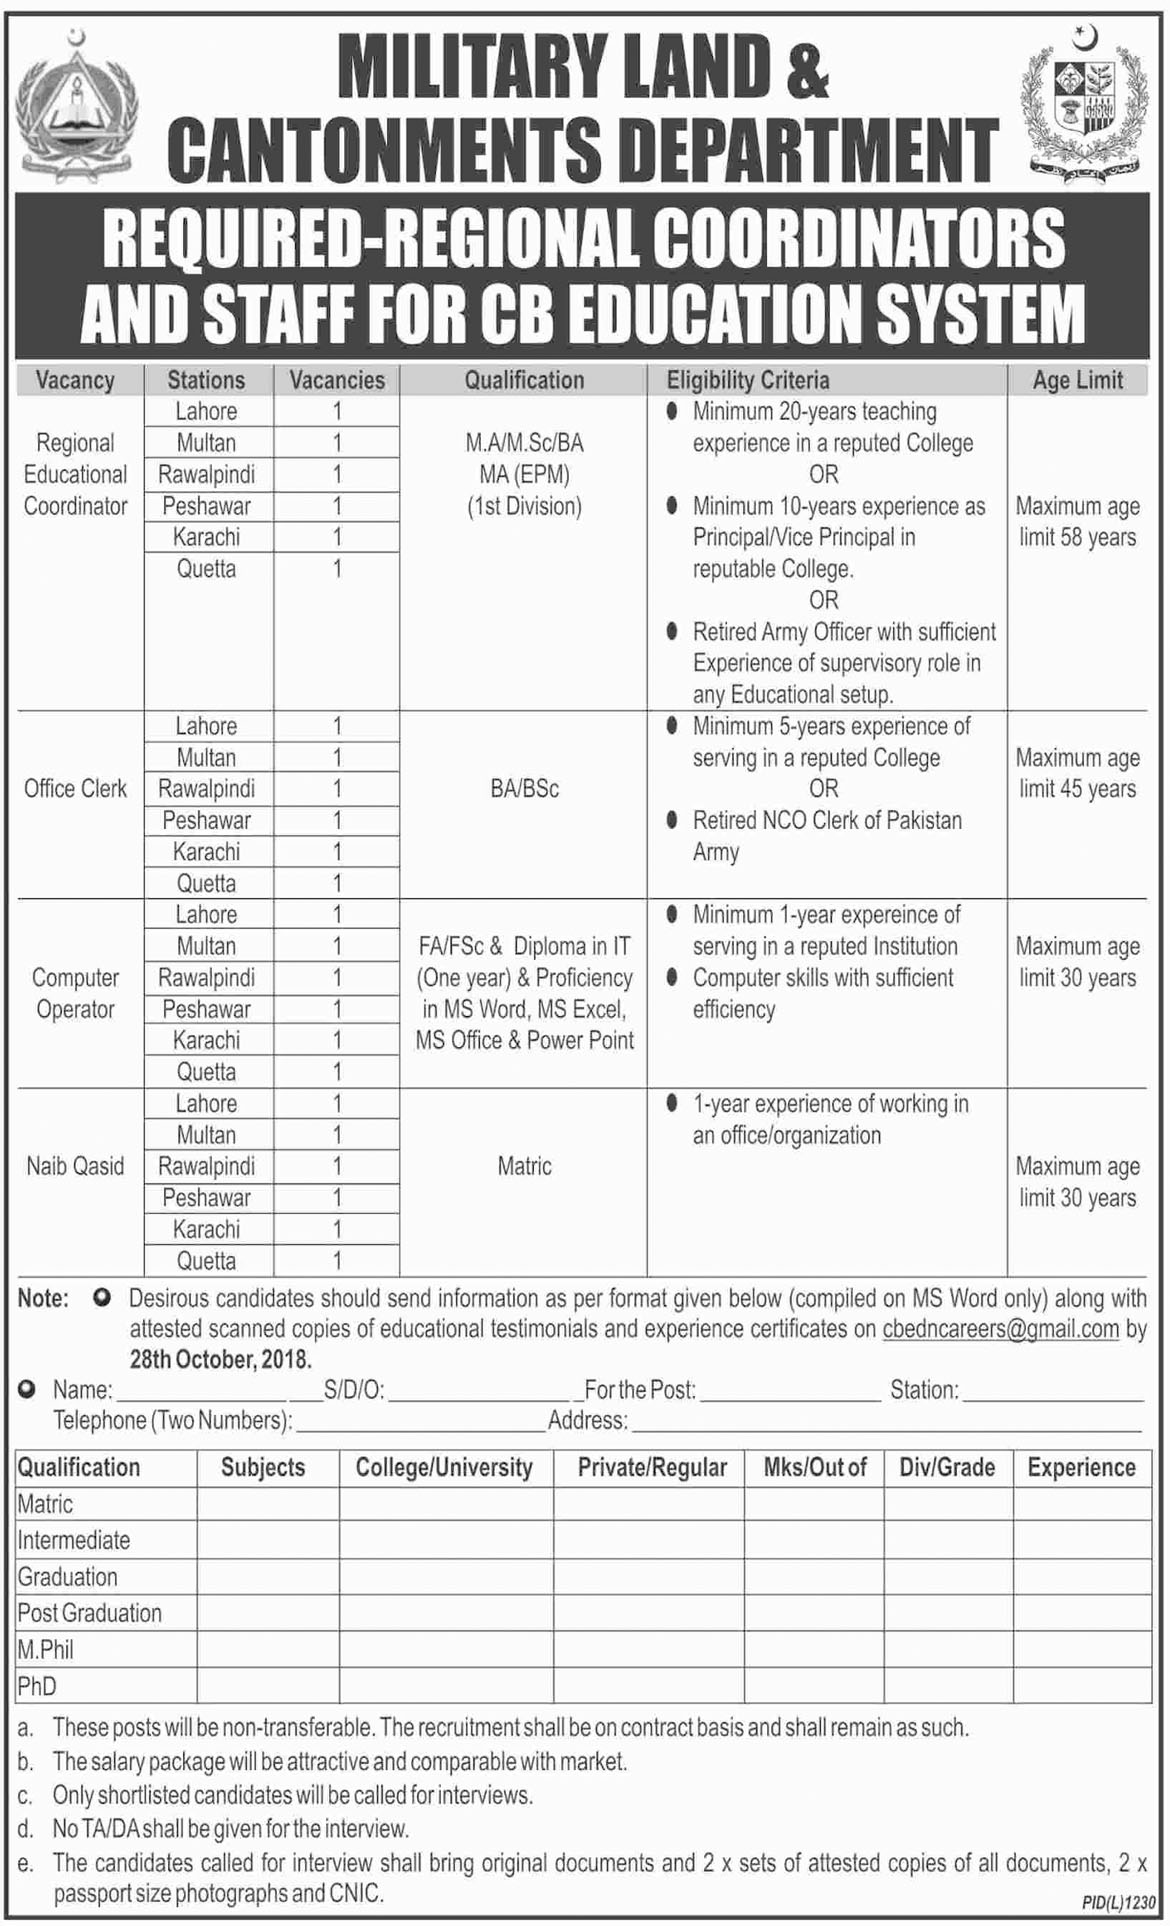 Jobs In Military Lands And Cantonments Department 23 Oct 2018